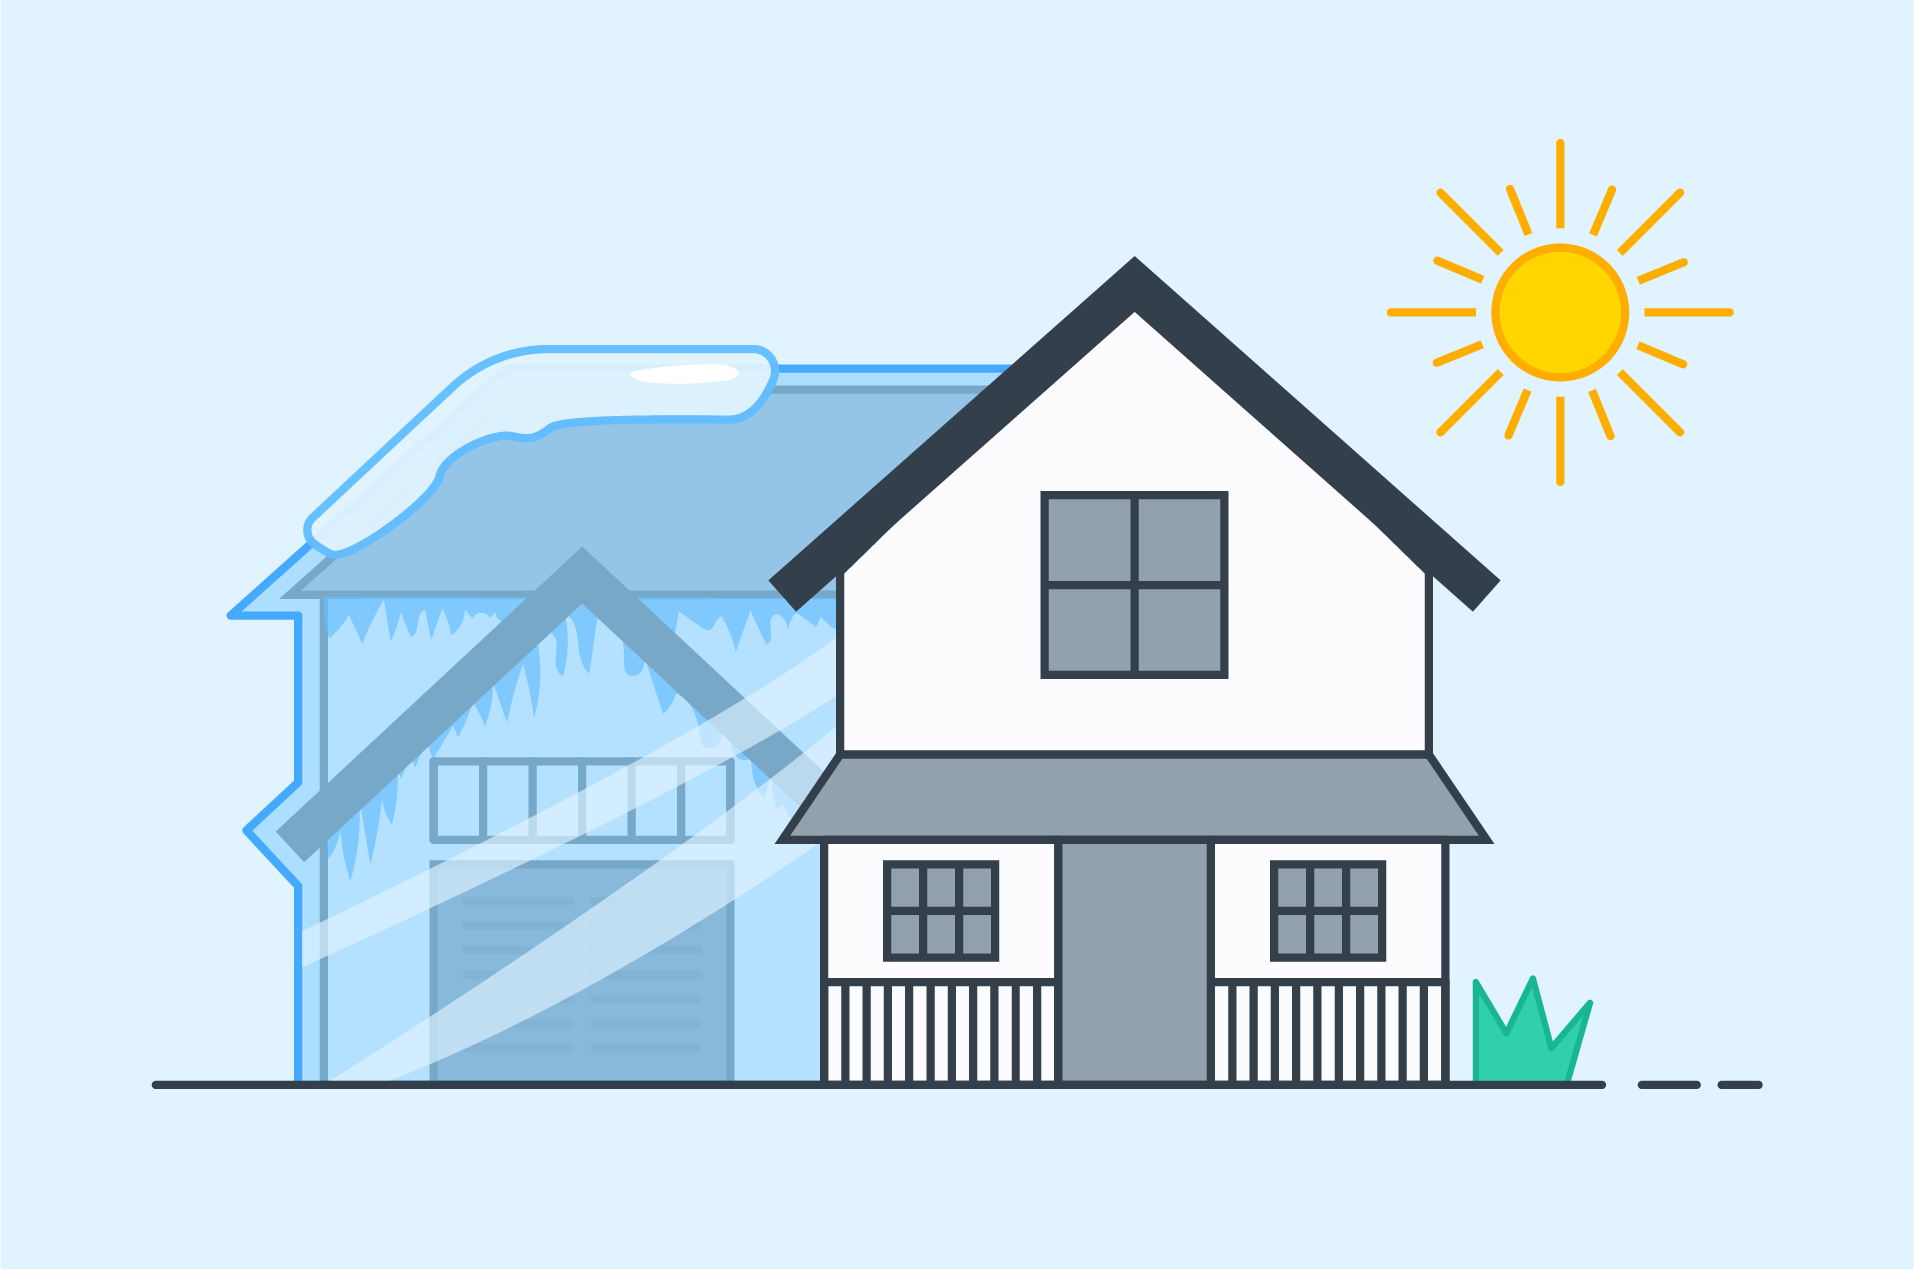 Dewinterizing: What It Is and Why It's Important